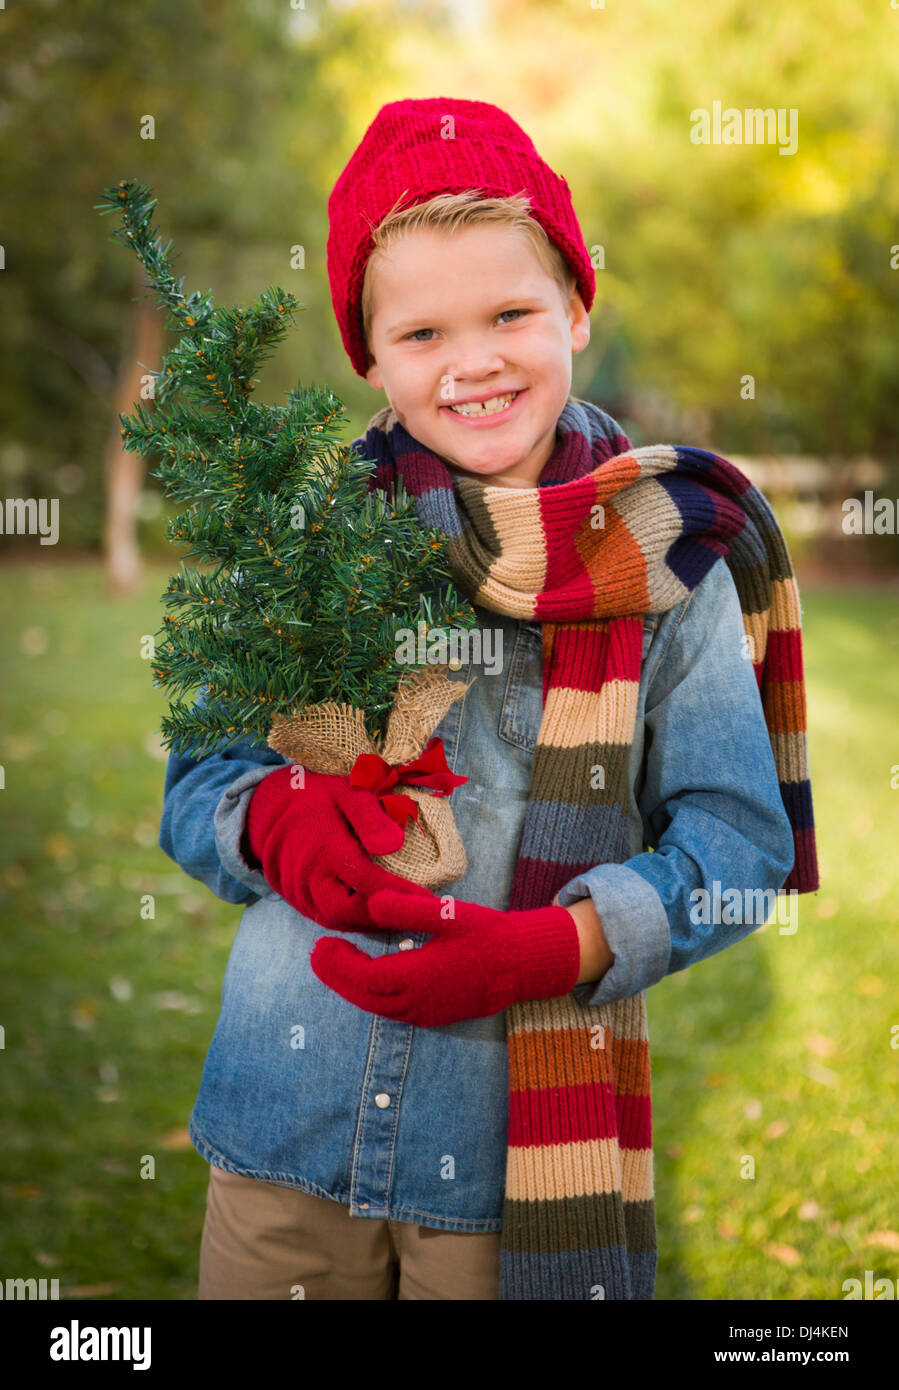 Handsome Young Boy Wearing Holiday Clothing Holding Small Christmas Tree Outside. - Stock Image